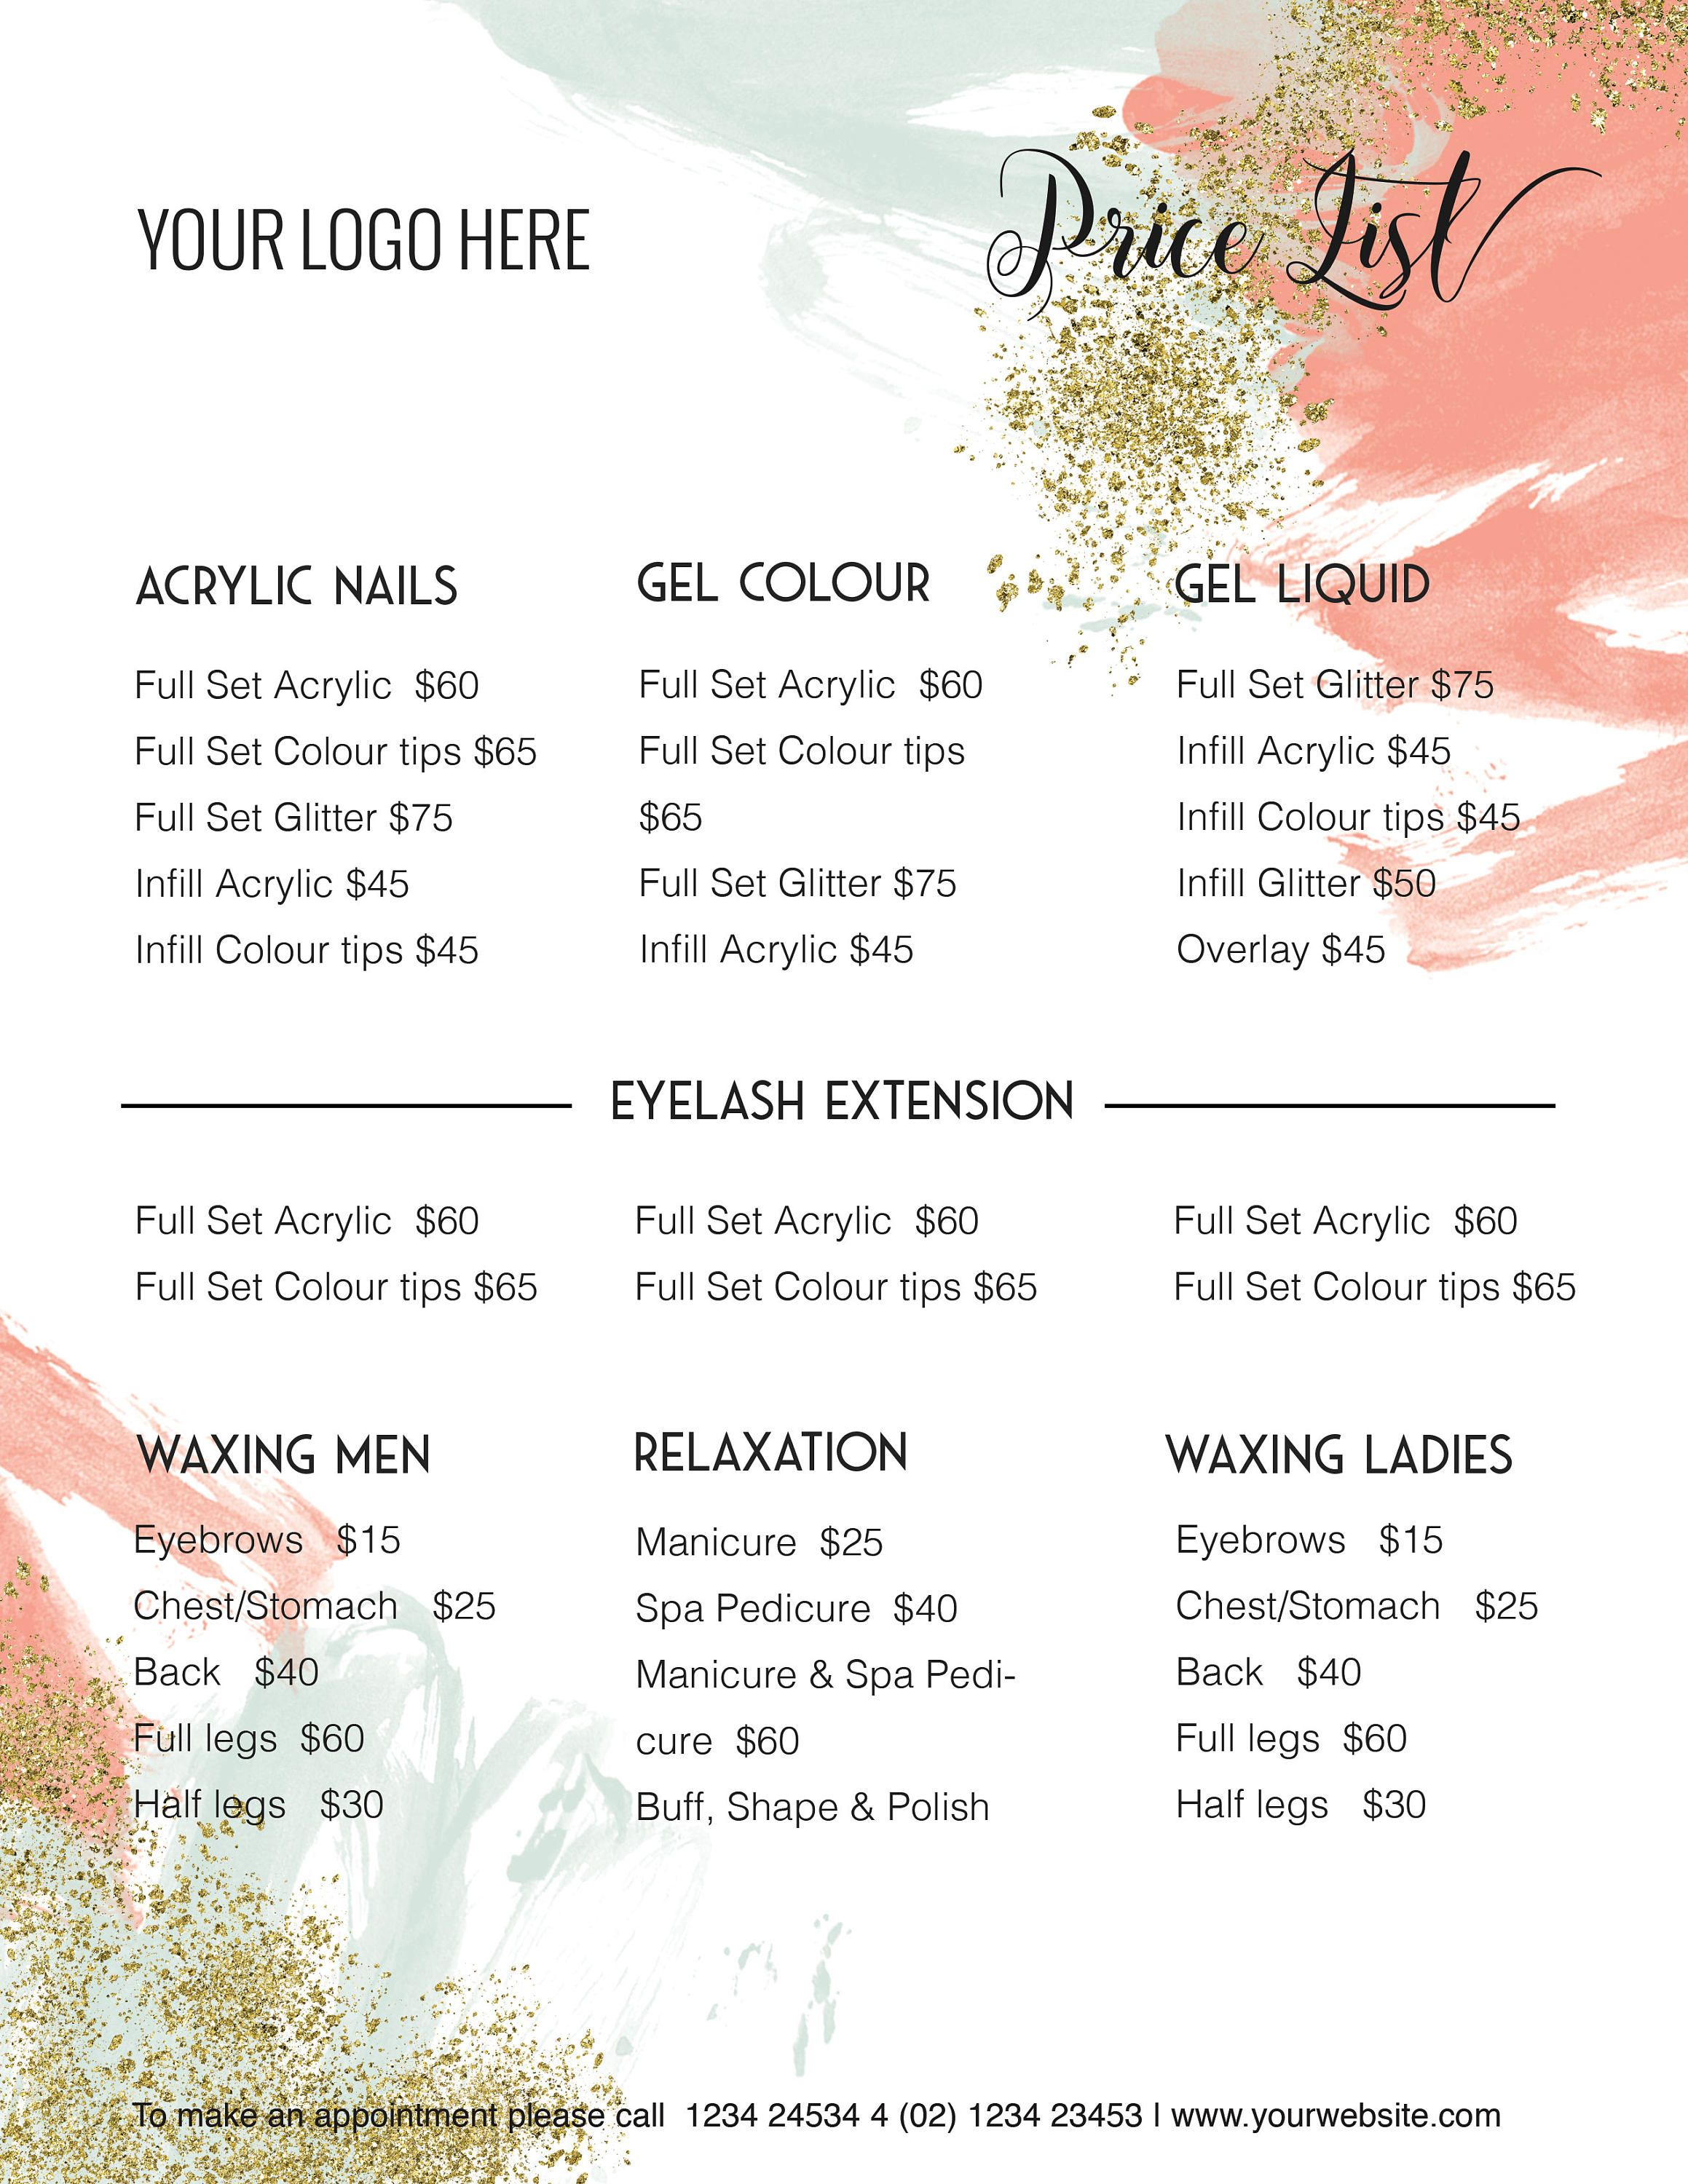 Edit Able Price Guide Pricing List Template Specials Etsy Salon Price List Acrylic Nails Price Nail Prices